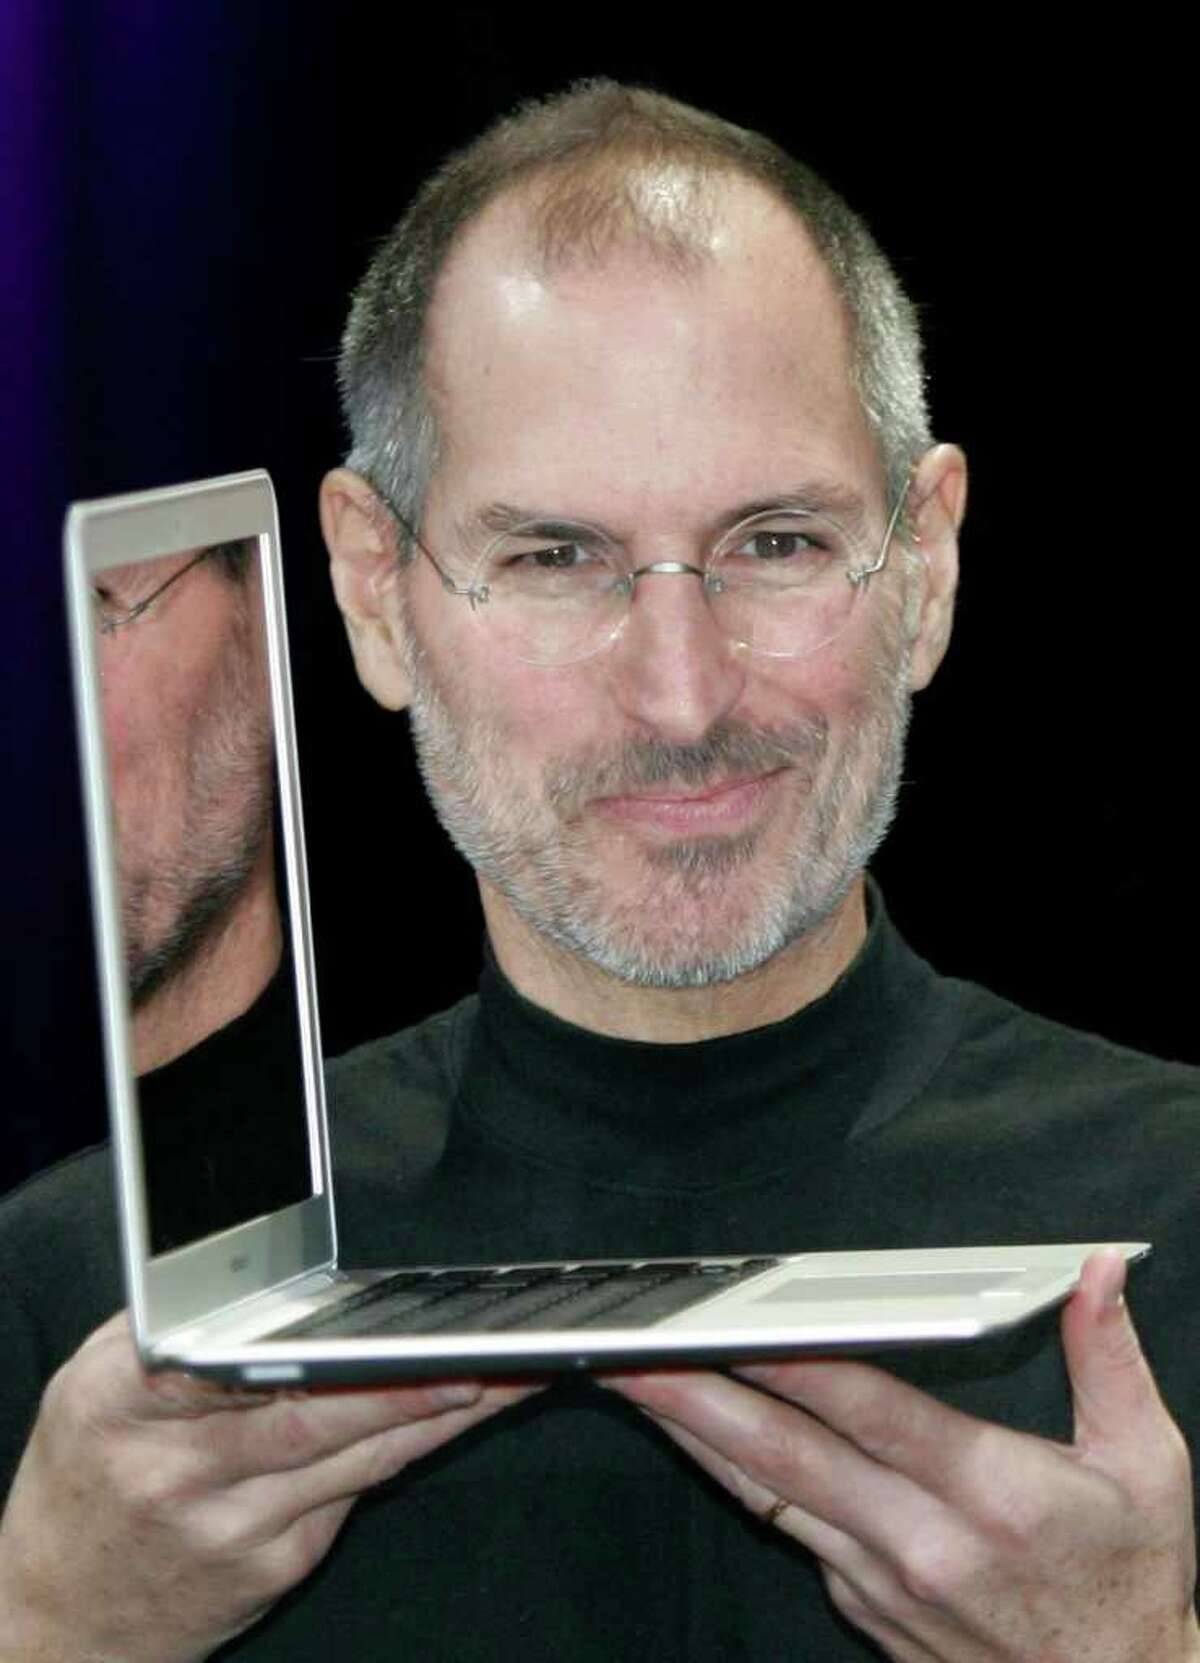 Apple CEO Steve Jobs holds up the MacBook Air after his keynote at the MacWorld Conference in San Francisco, Tuesday, Jan. 15, 2008. The super-slim new laptop is less than an inch thick and turns on the moment it's opened. (AP Photo/Paul Sakuma)